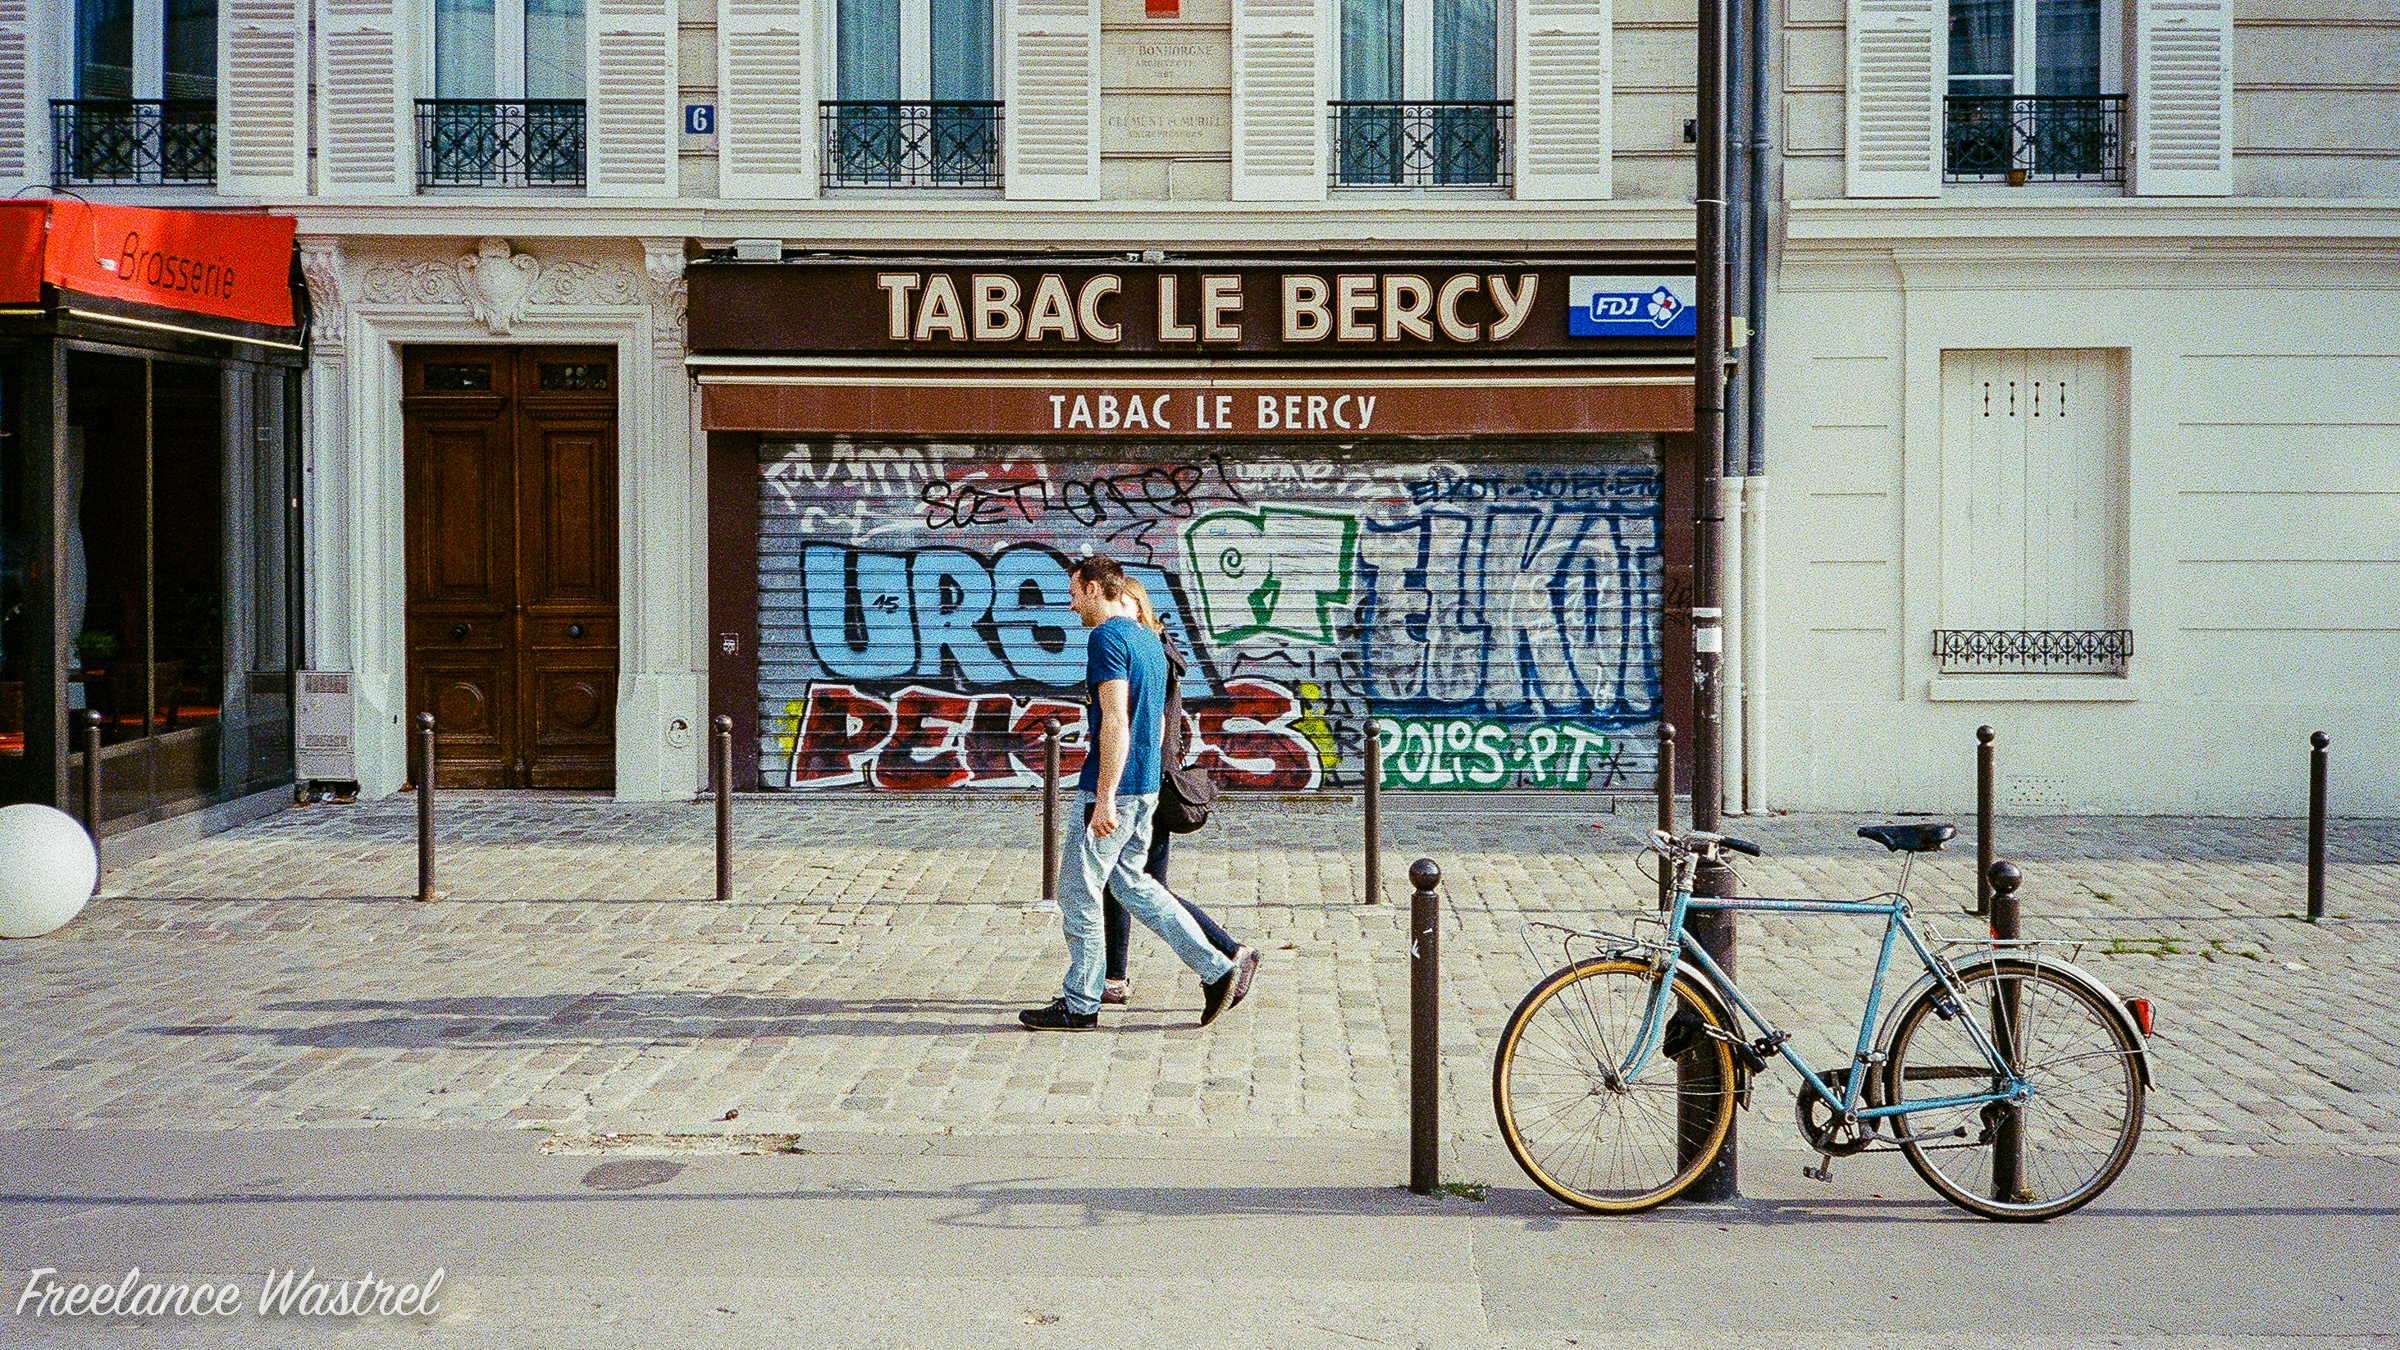 Tabac Le Bercy, August 2016